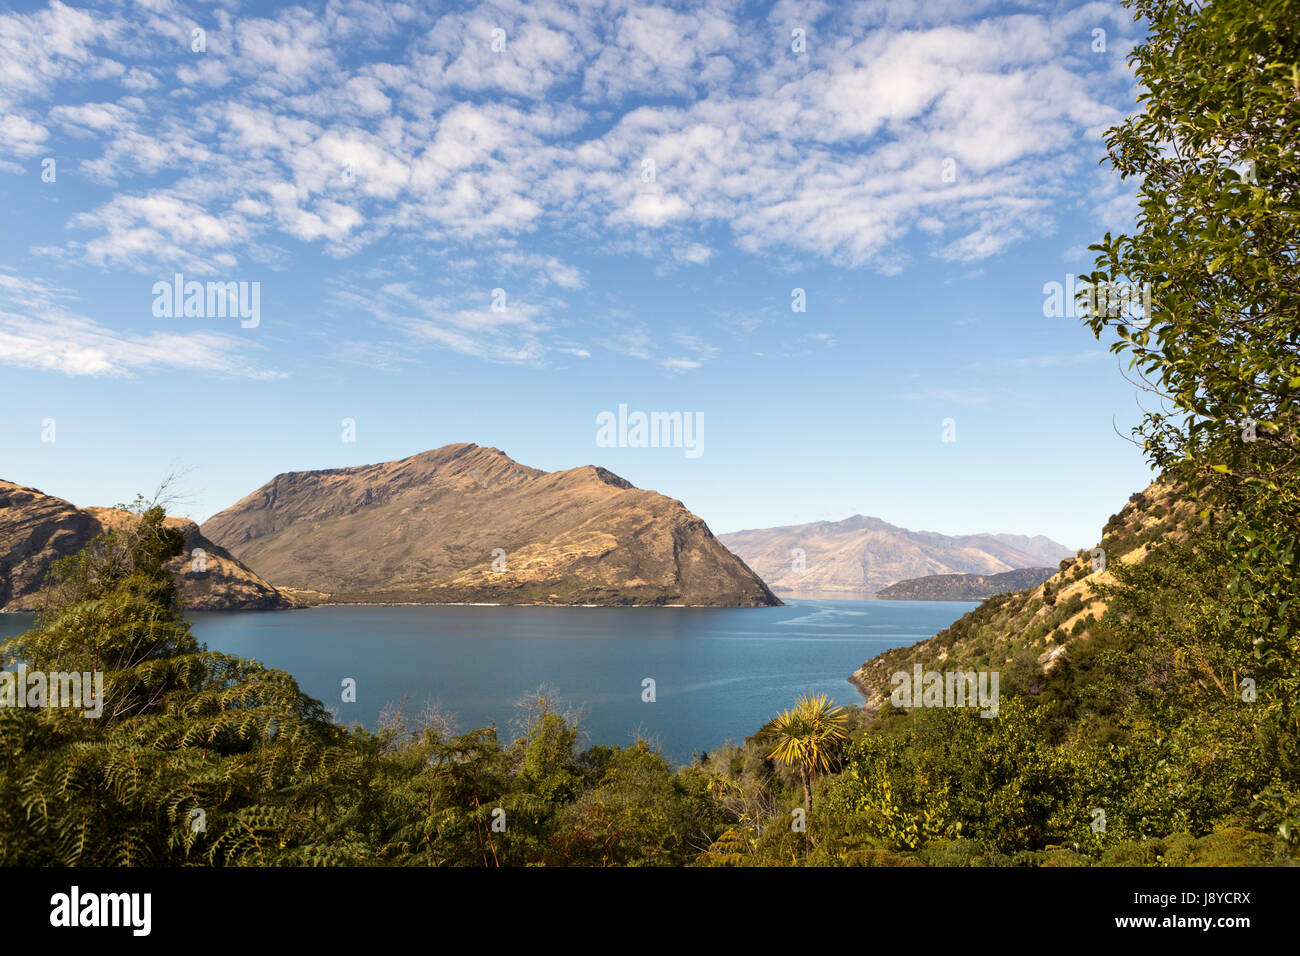 Mou Who Island New Zealand - Stock Image